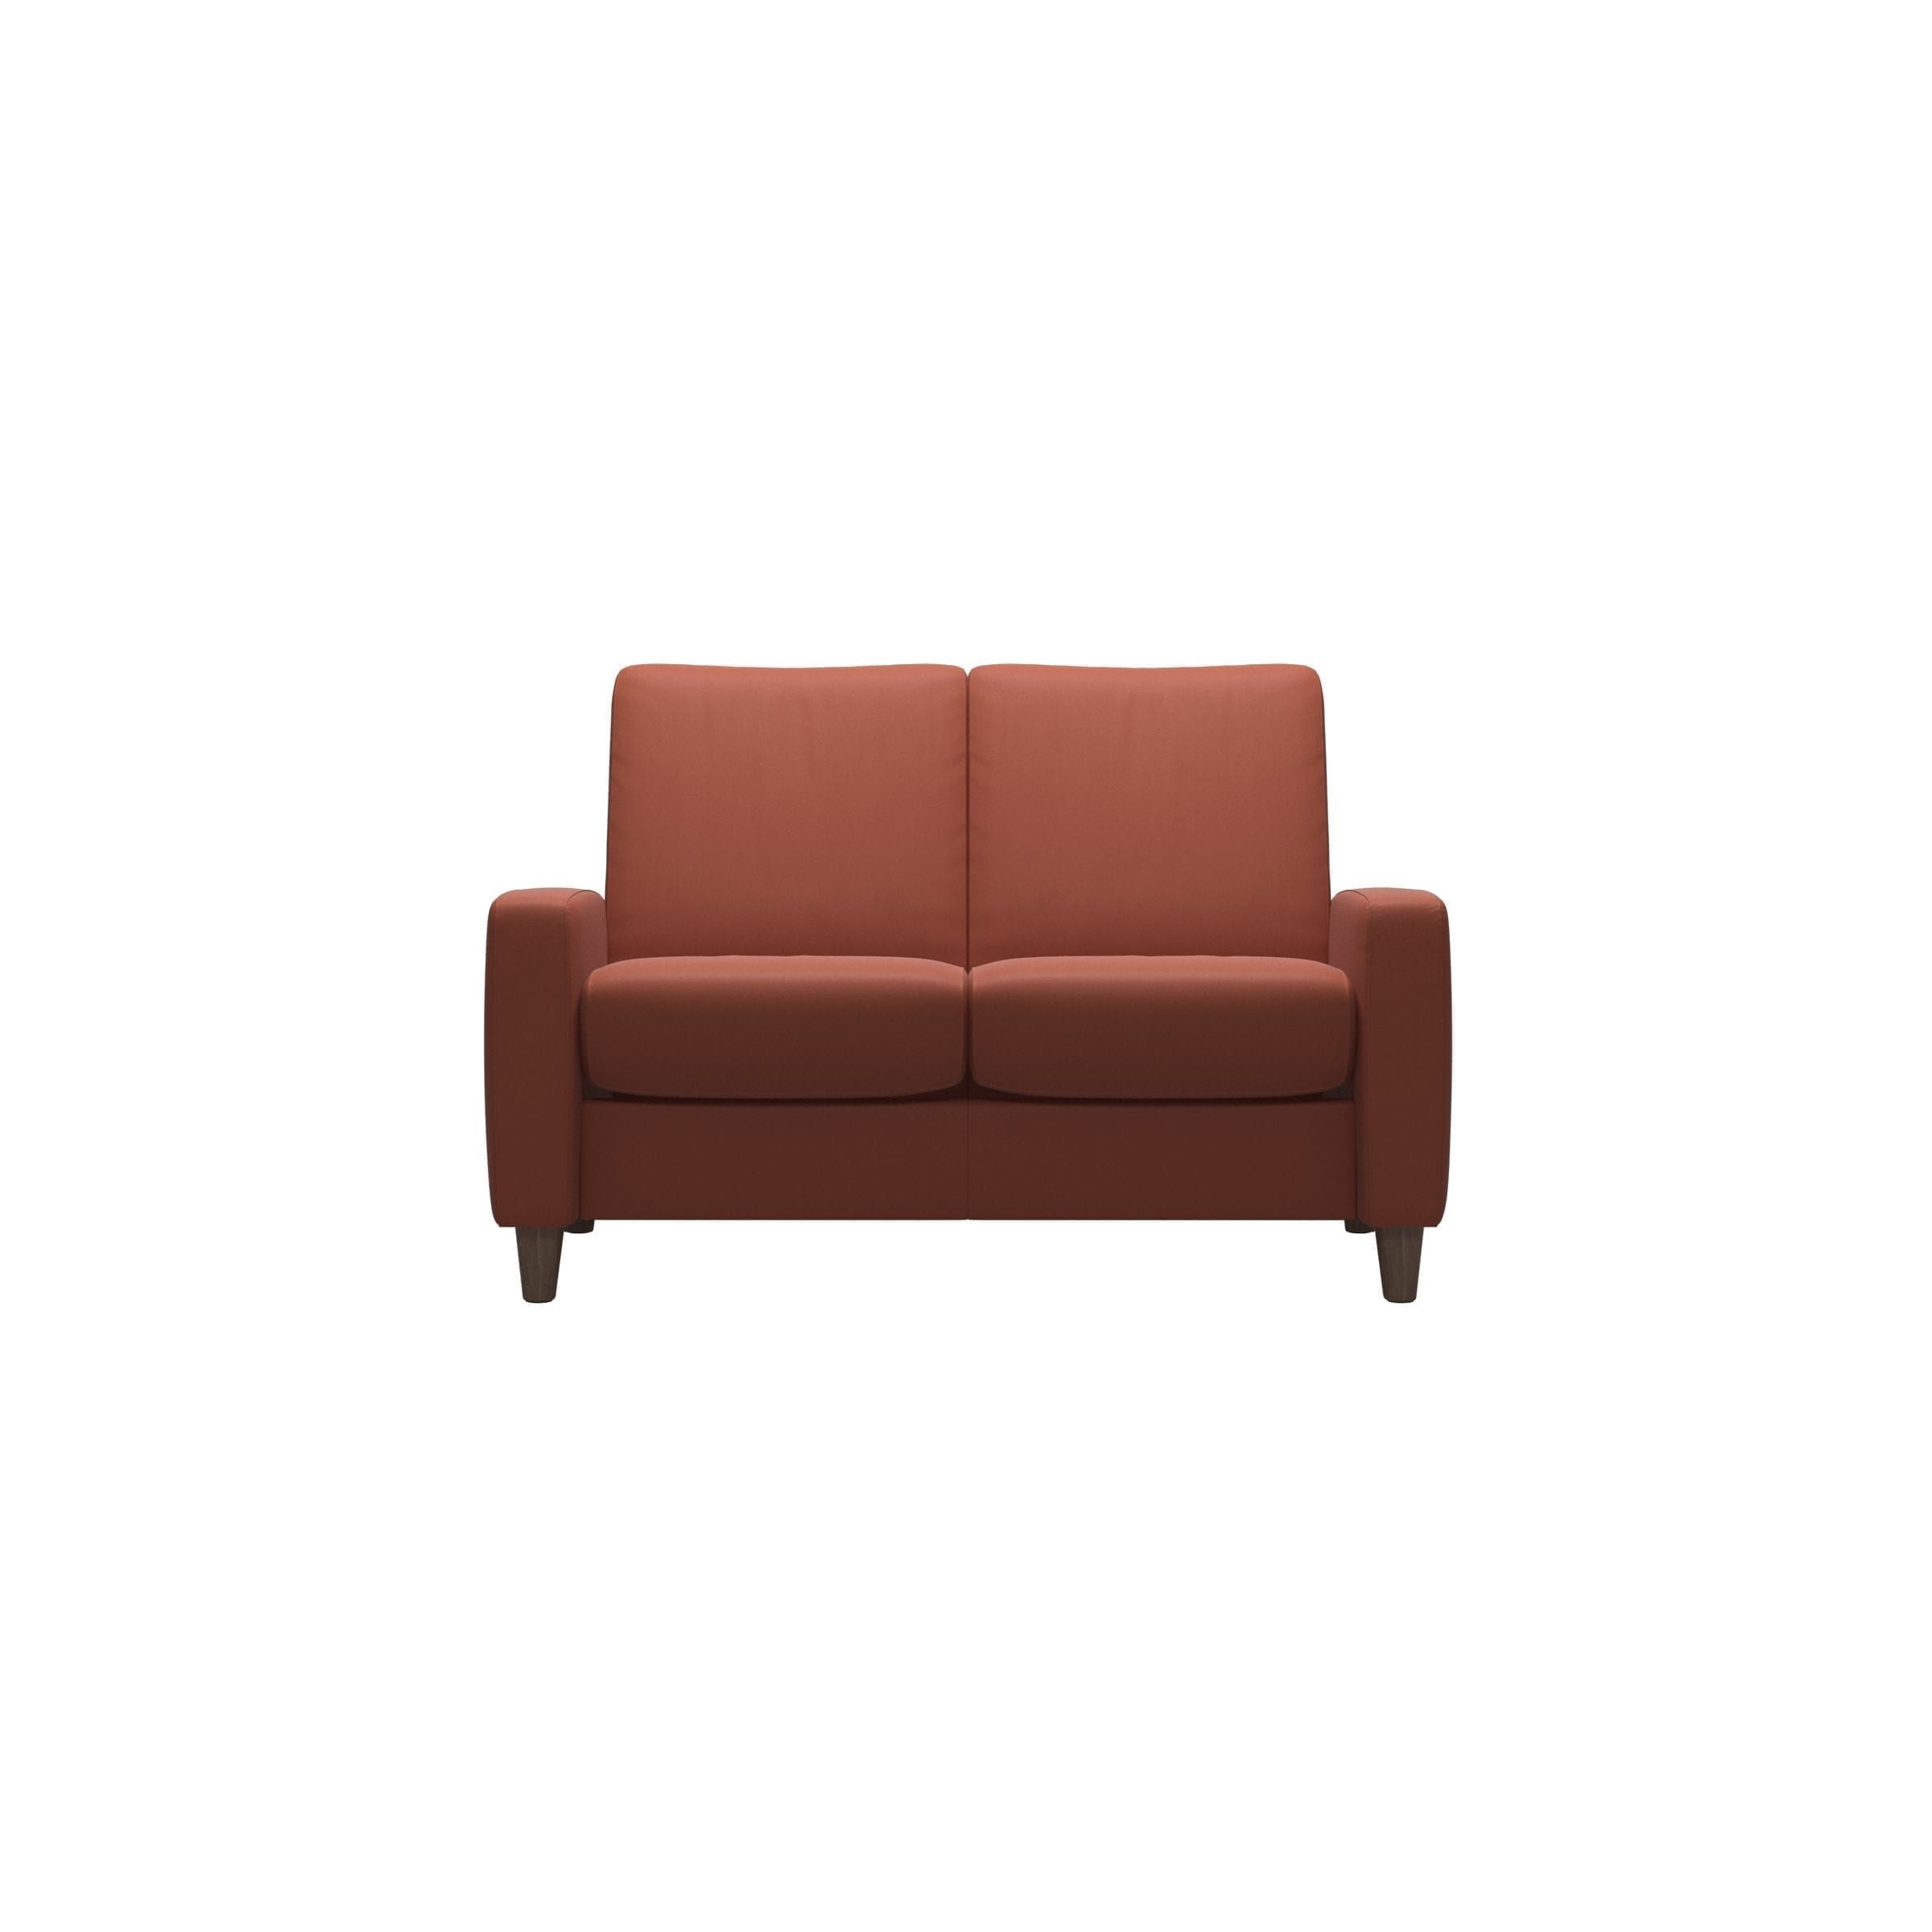 Arion 19 A10 Stressless Low Back